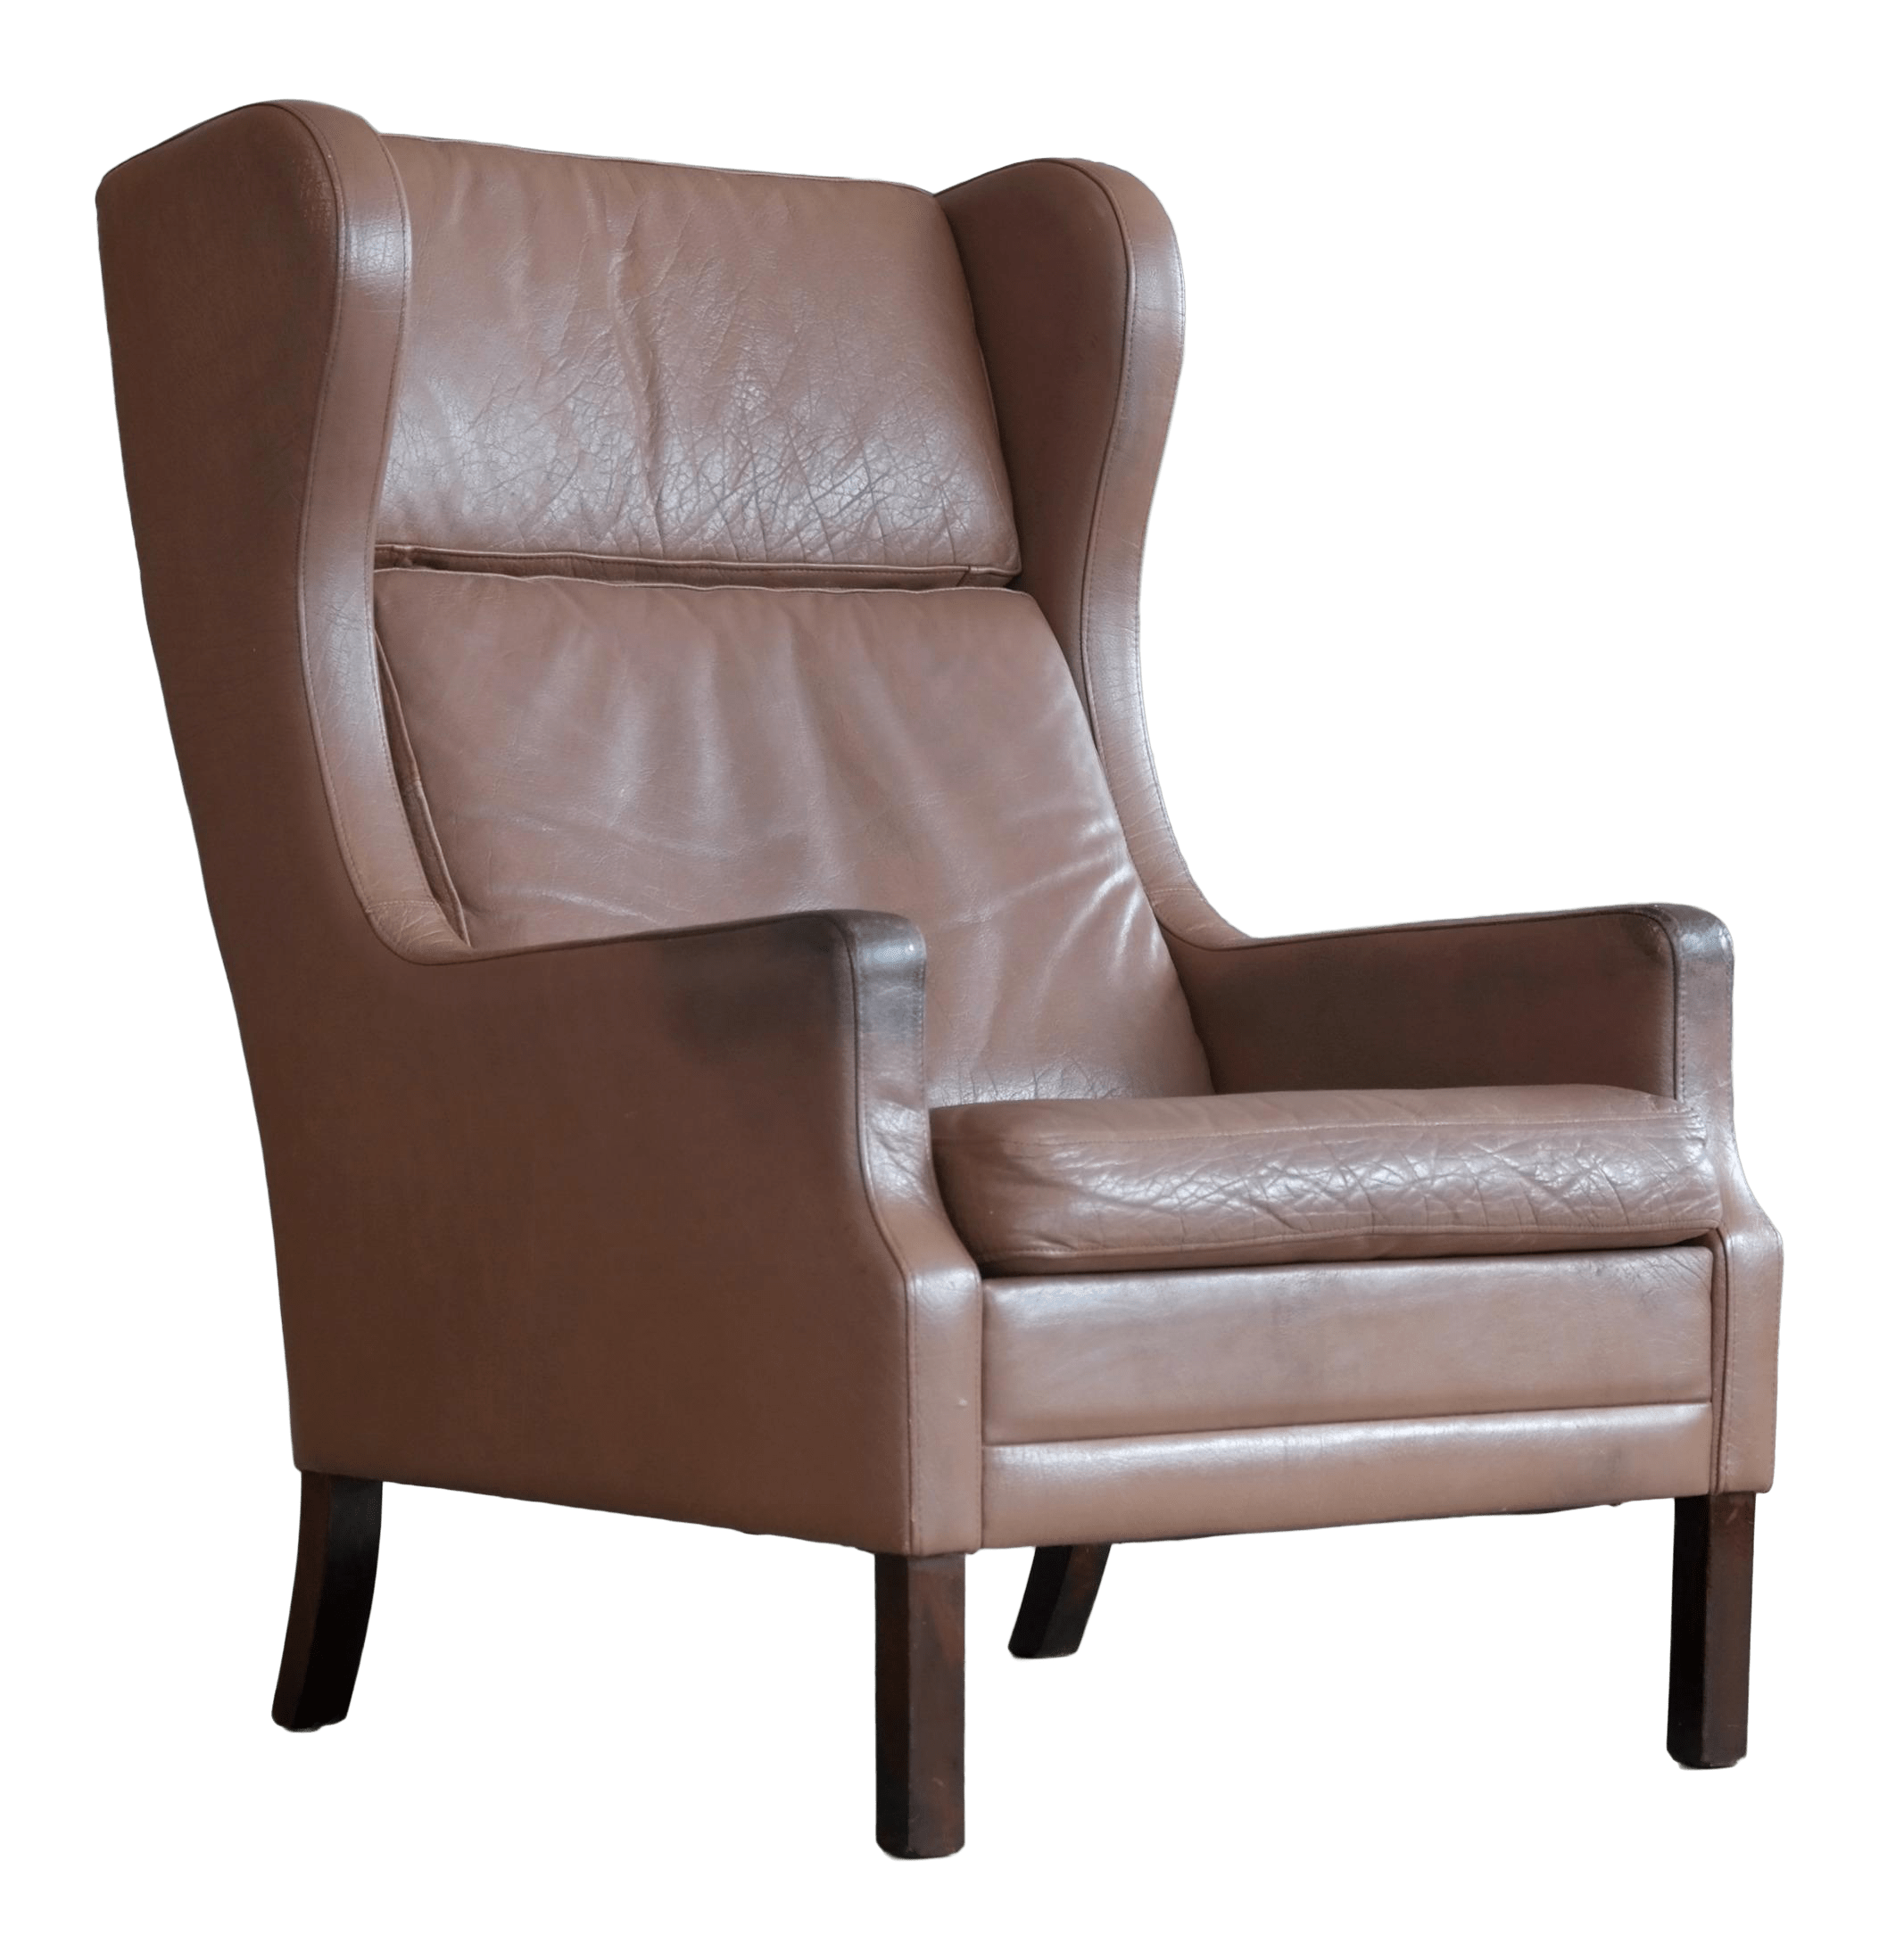 Brown Leather Wingback Chair Borge Mogensen Style Leather Wingback Chair